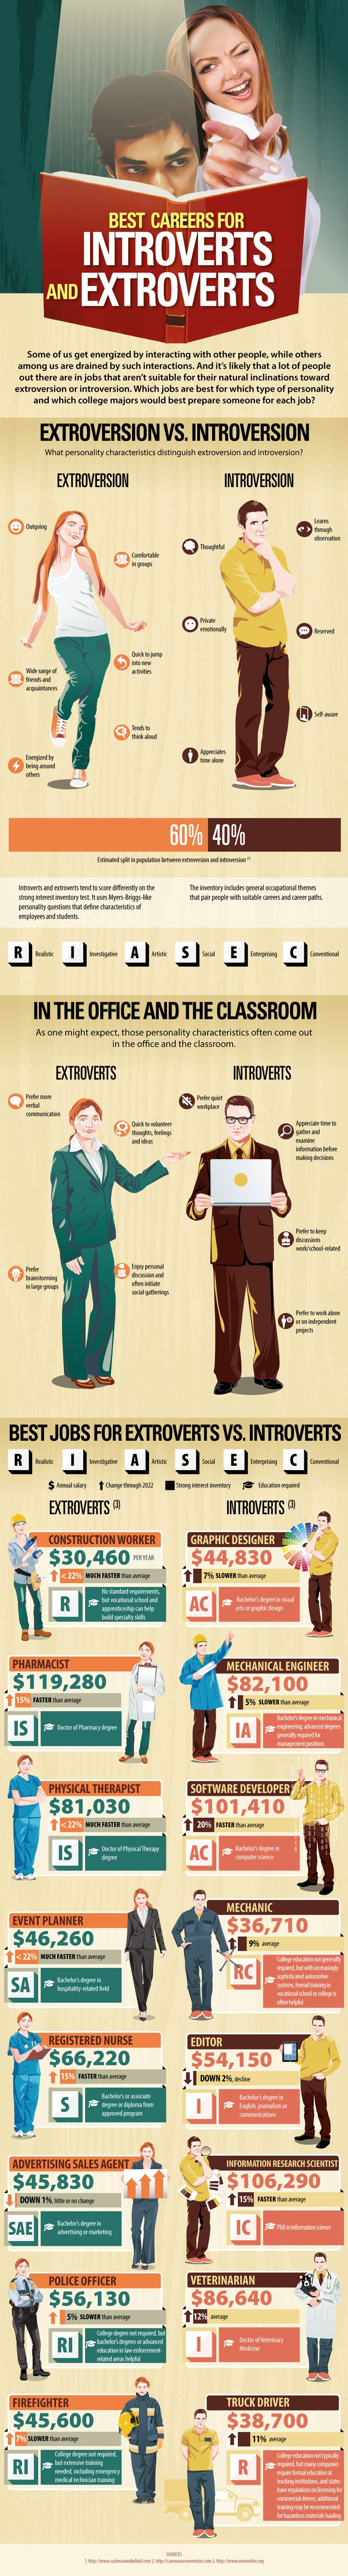 best ideas about career assessment career introverted versus extroverted personalities interest inventory career infographic careerassessmentsite com